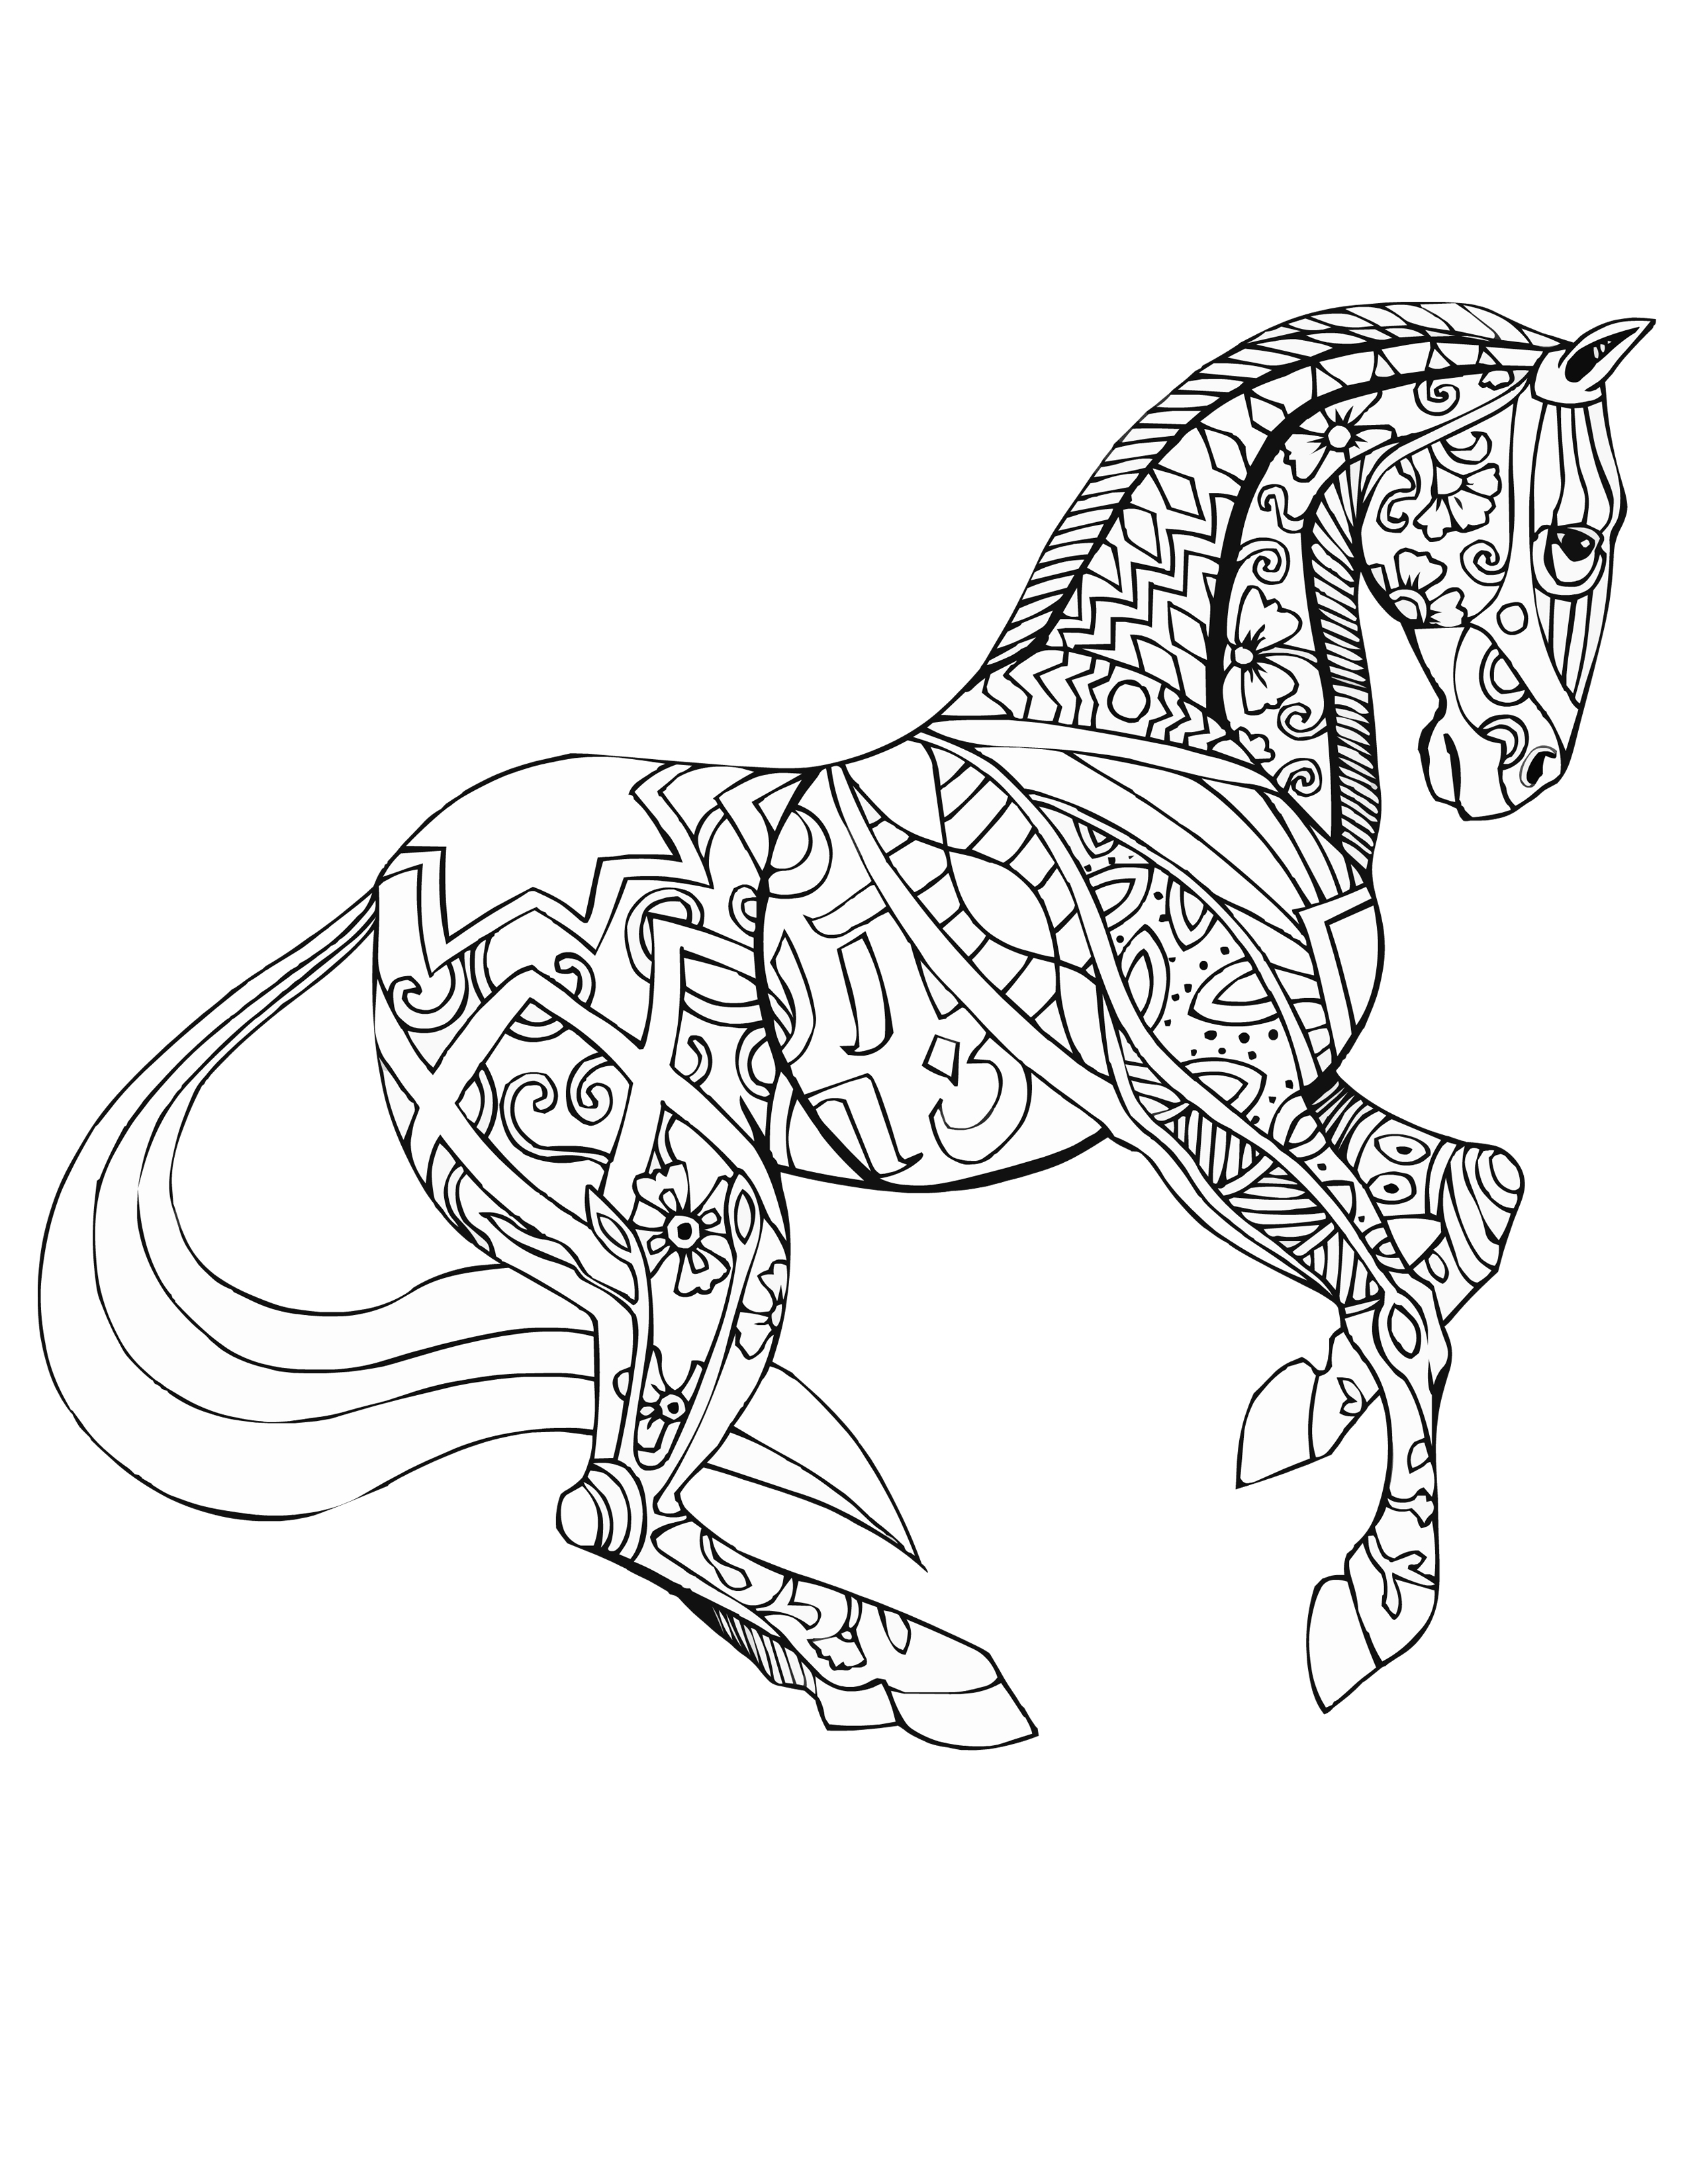 horses for free horse coloring pages for adults best coloring pages for kids free for horses